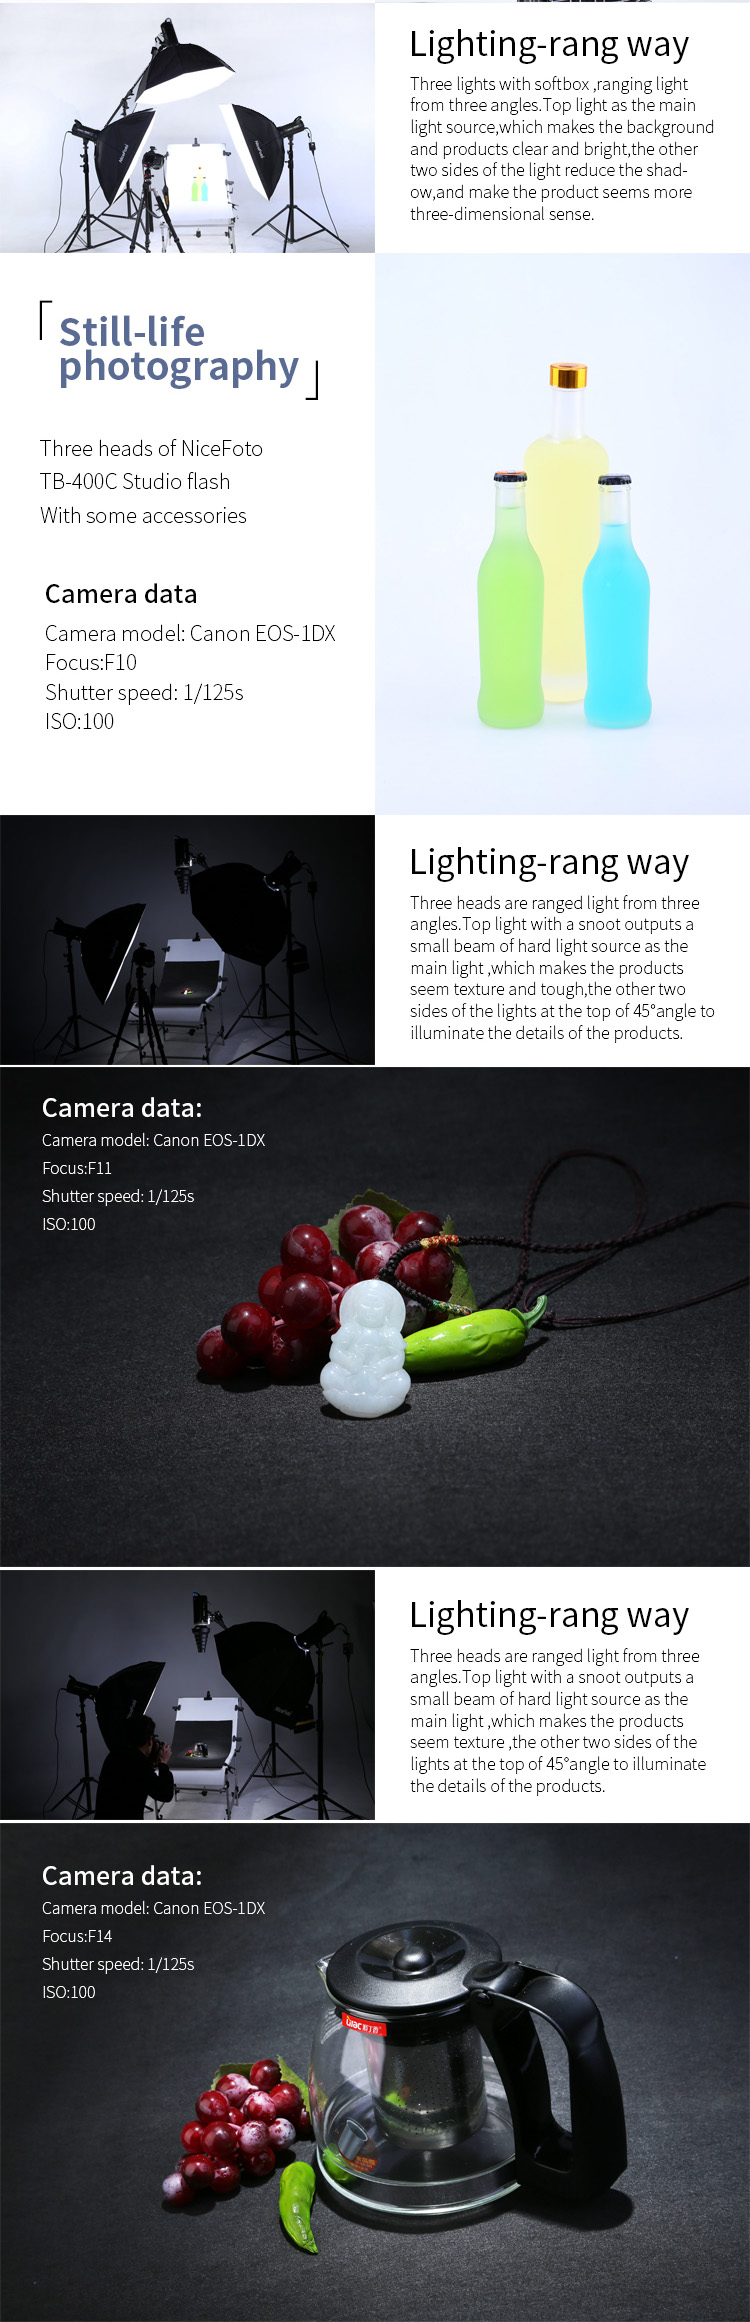 TB-600C NiceFoto Studio Equipment Studio Flash Lighting Strobe flash Camera photo  flash Photographic equipment